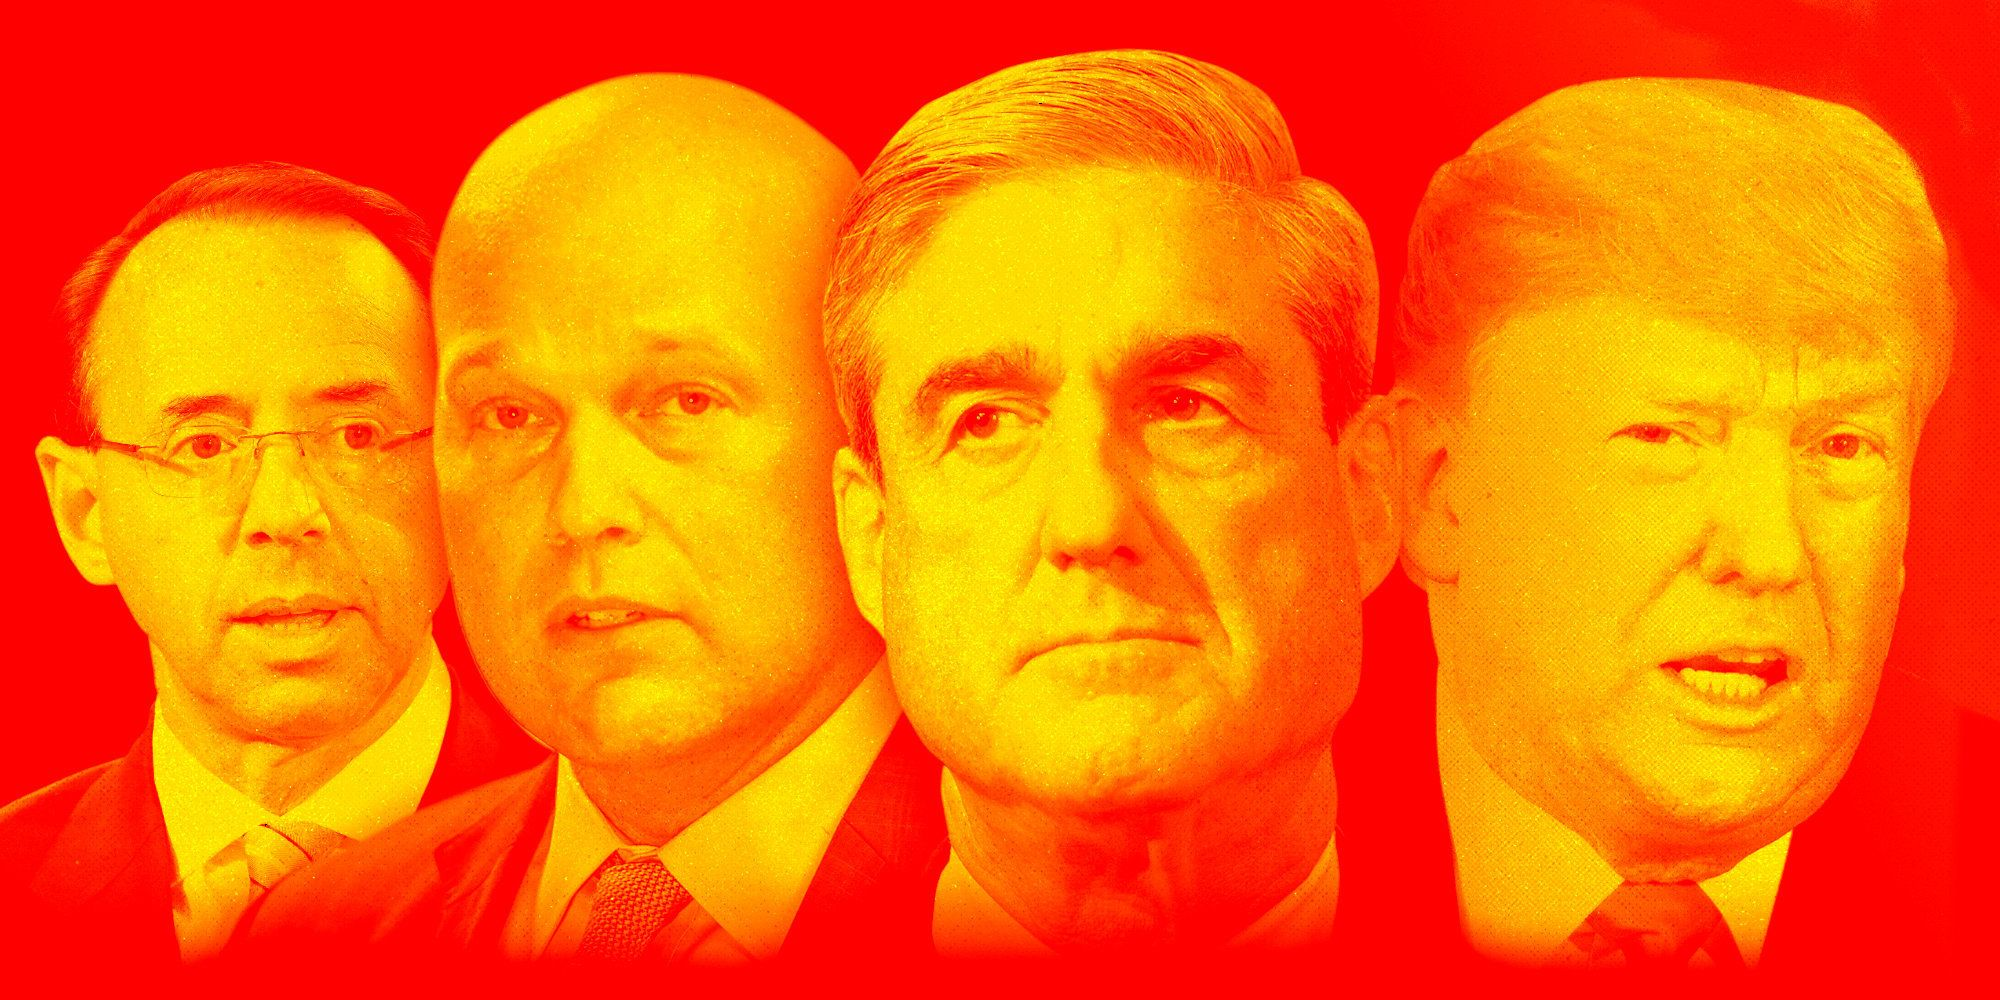 What To Know About The Mueller Investigation Into Russian Election